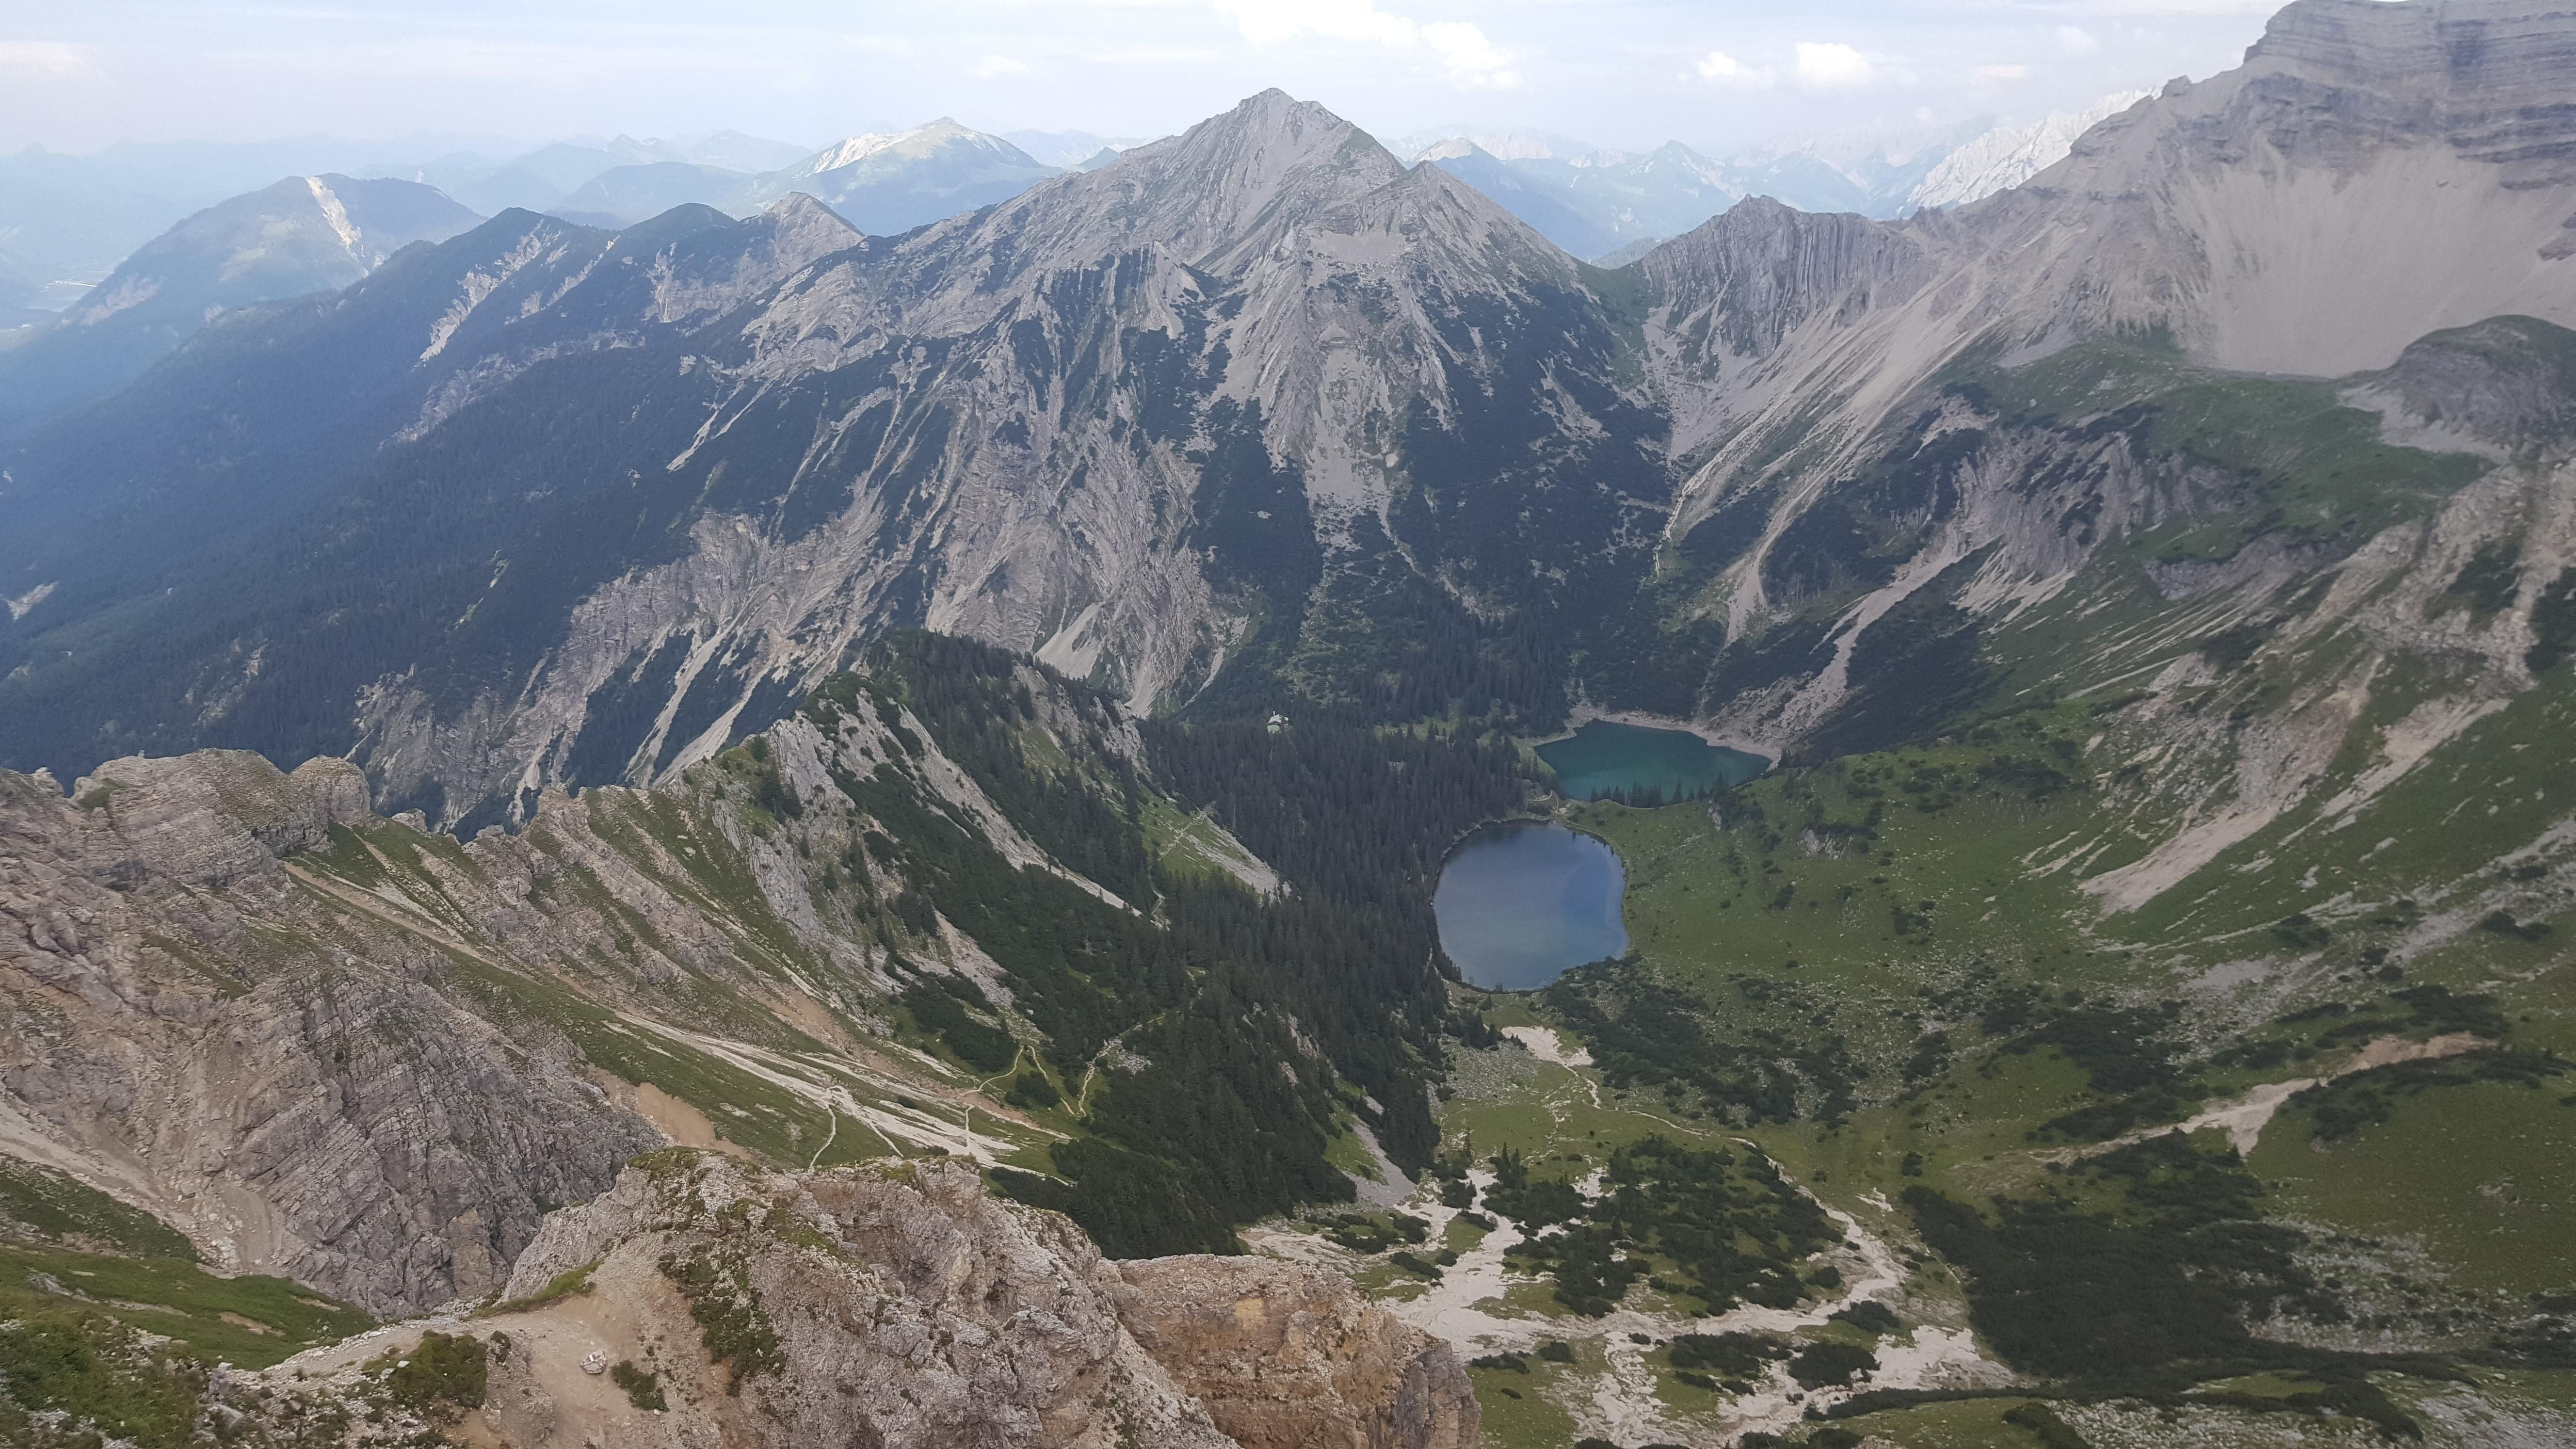 Schöttelkarspitze Bayern - Germany #hiking #camping #outdoors #nature #travel #backpacking #adventure #marmot #outdoor #mountains #photography